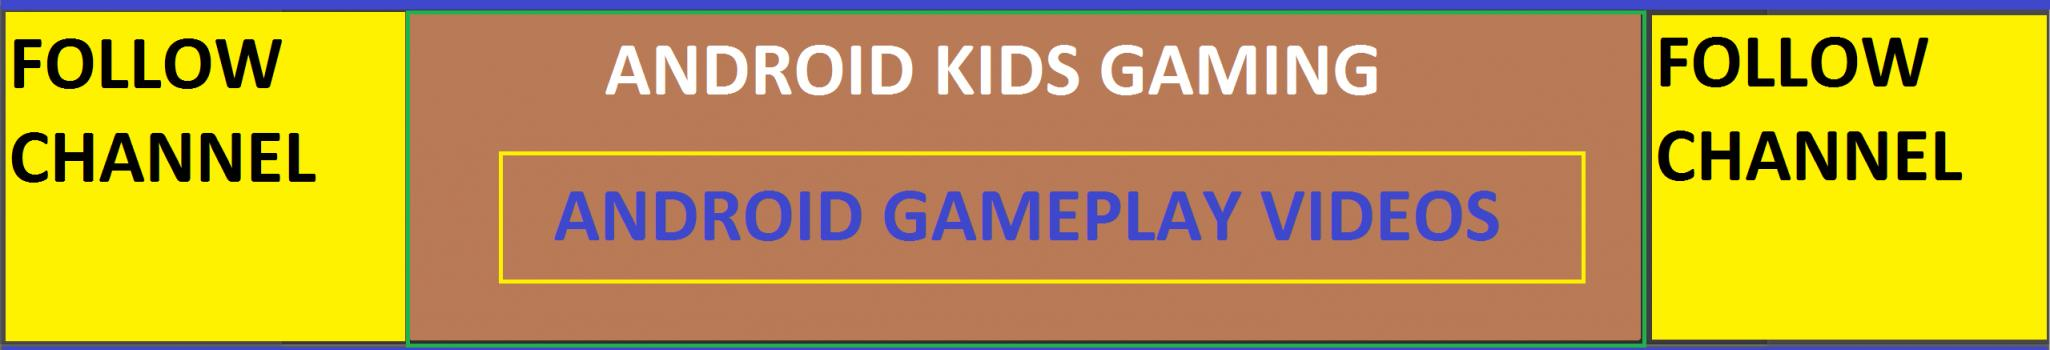 ANDROID KIDS GAMING